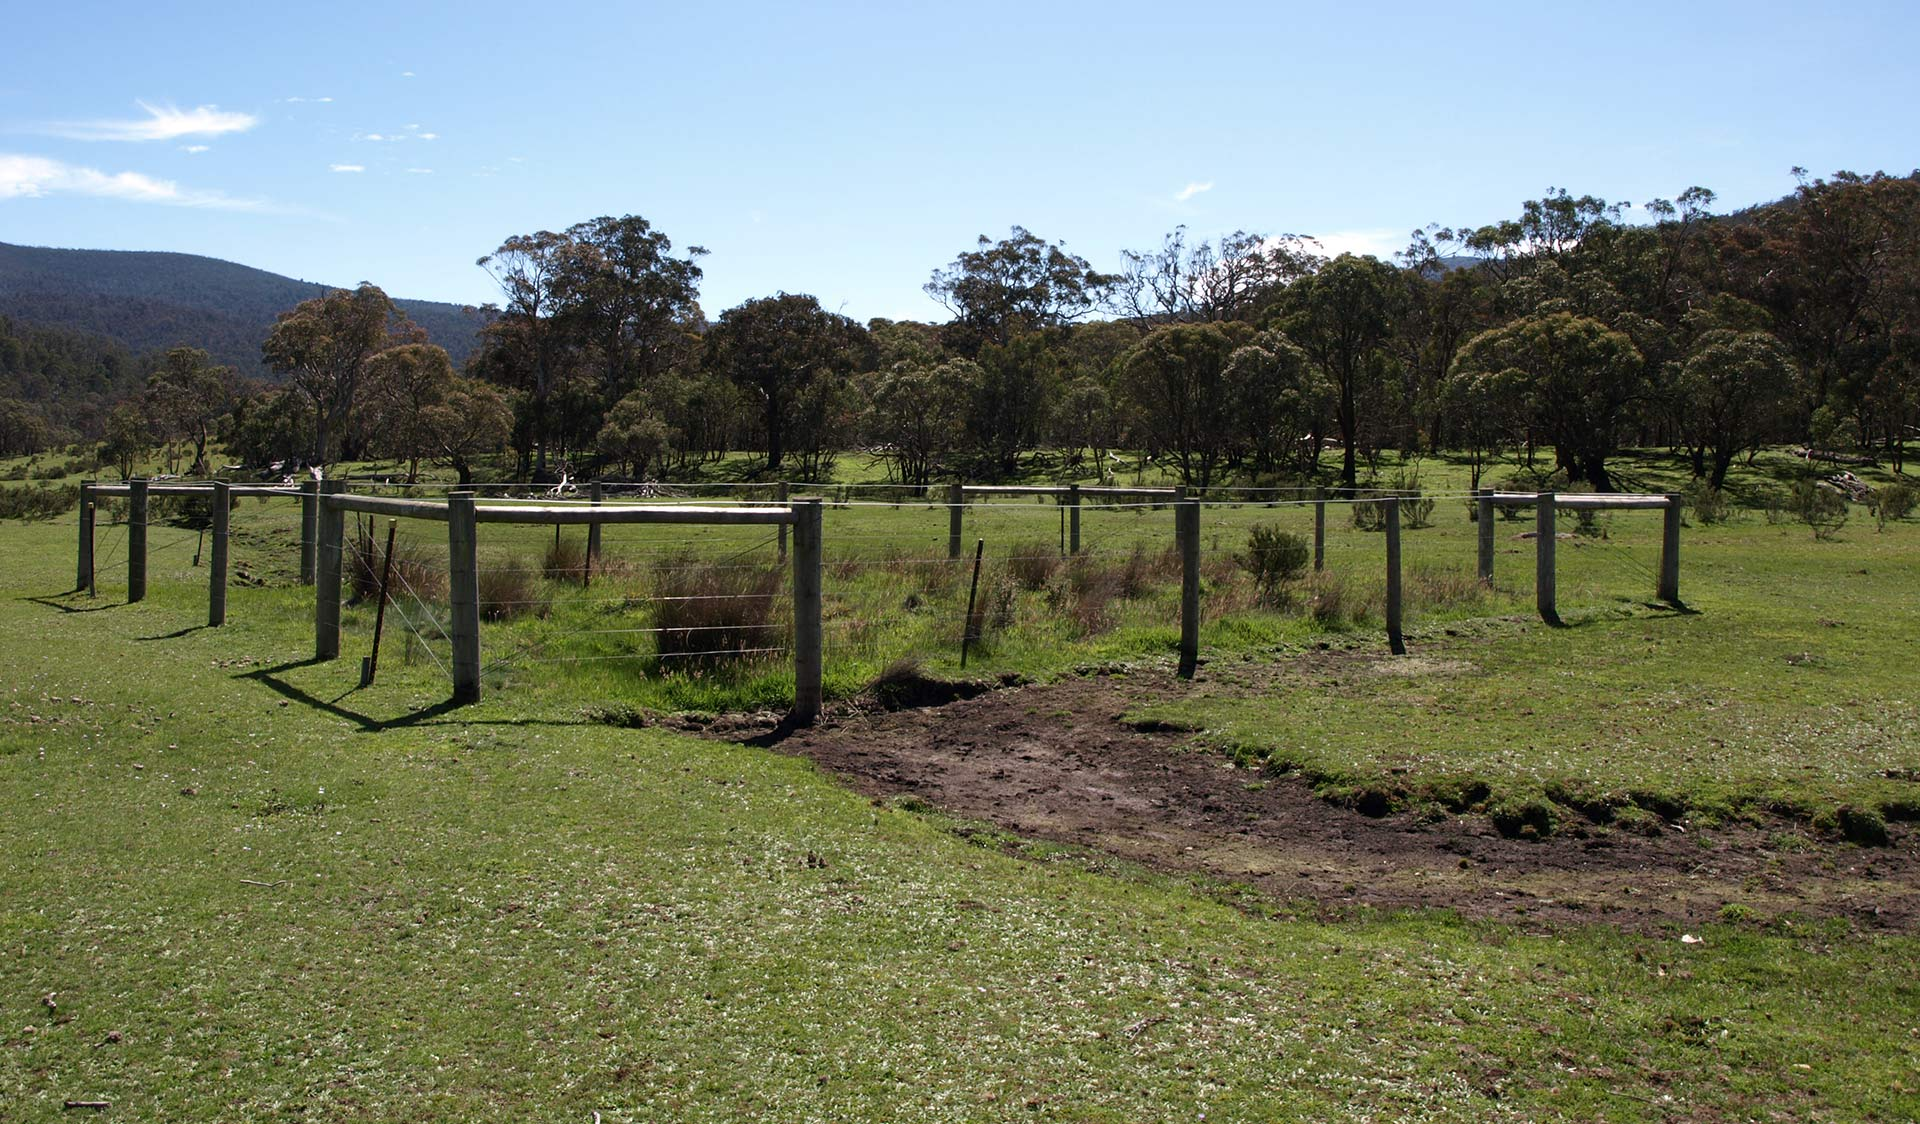 Exclusion plot in Alpine National Park showing intact native vegetation inside fence and feral horse impacts outside fence